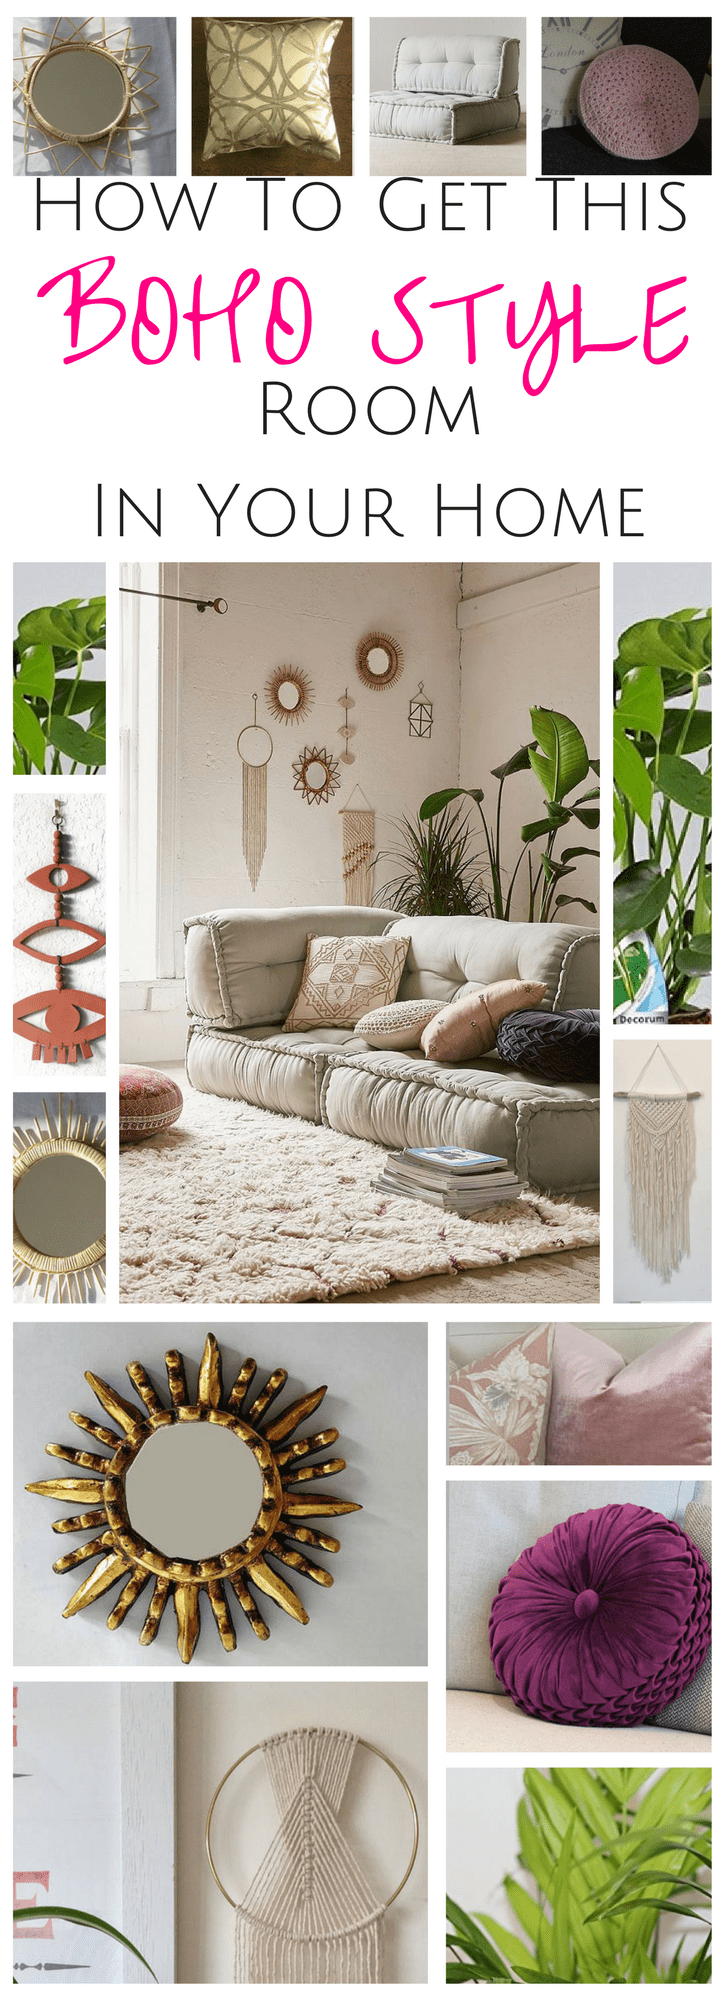 Boho style Room Decor | Home Decor